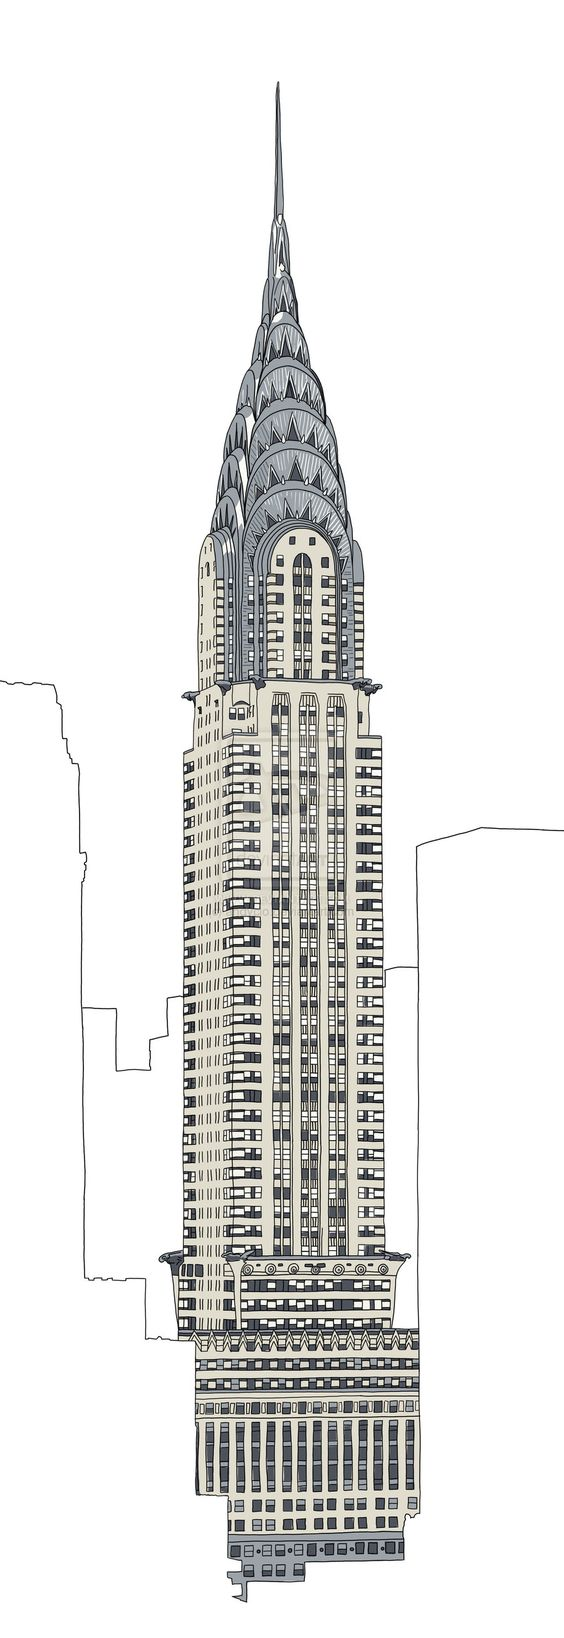 chrysler building drawing - Google Search | Gala ...